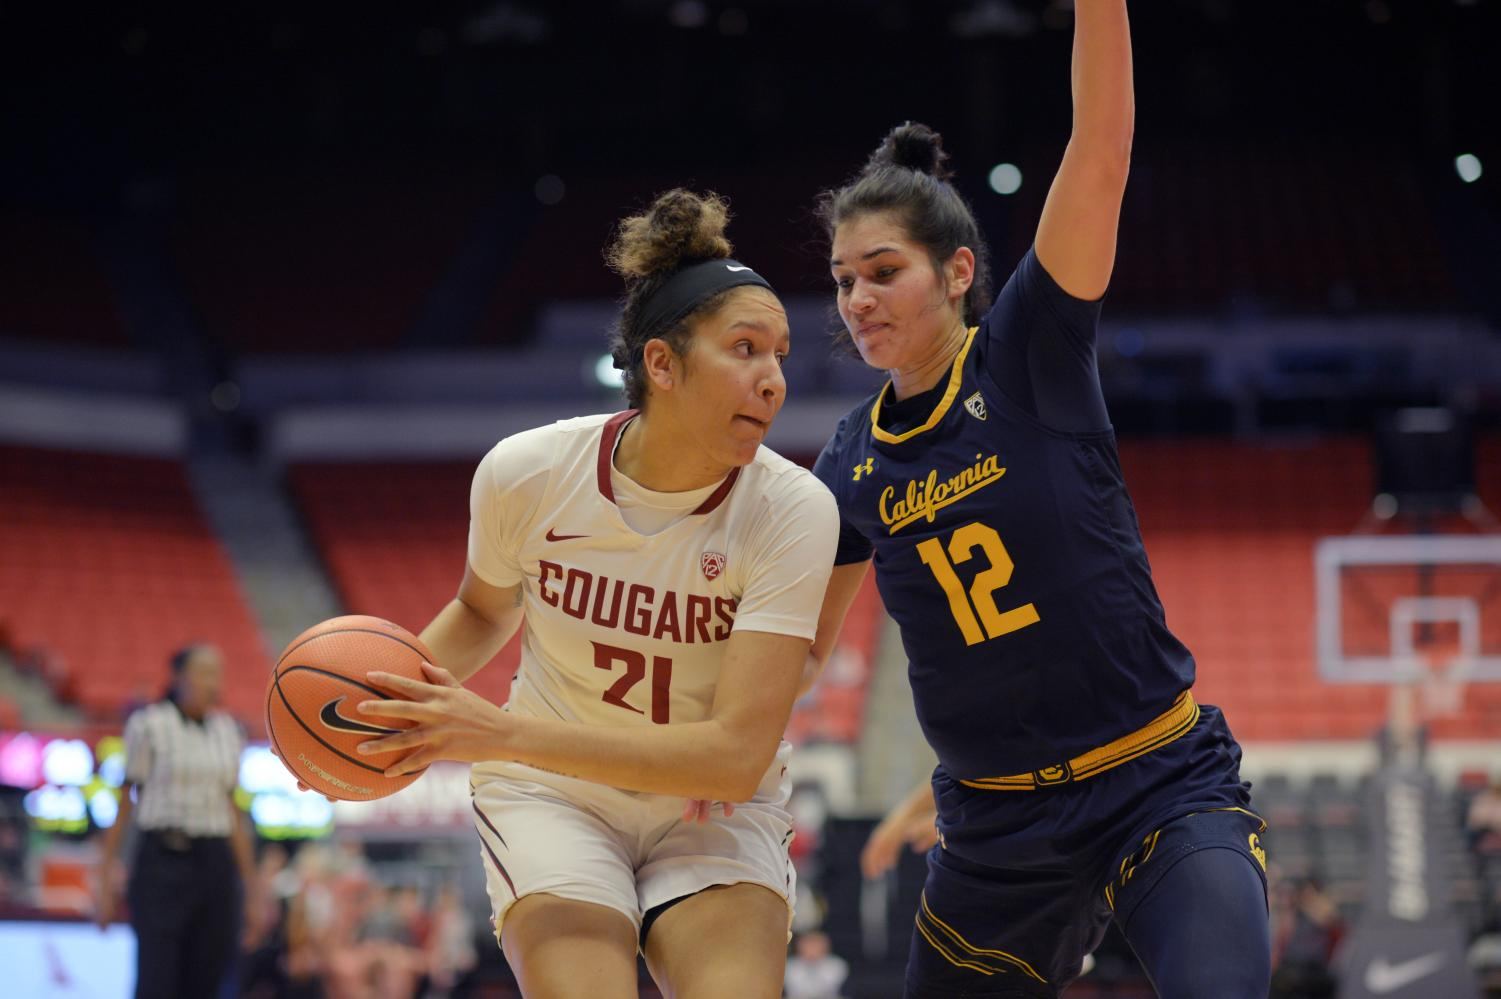 WSU forward Nike McClure defends the ball from Cal forward Penna Davidson Friday night in Beasley Coliseum.